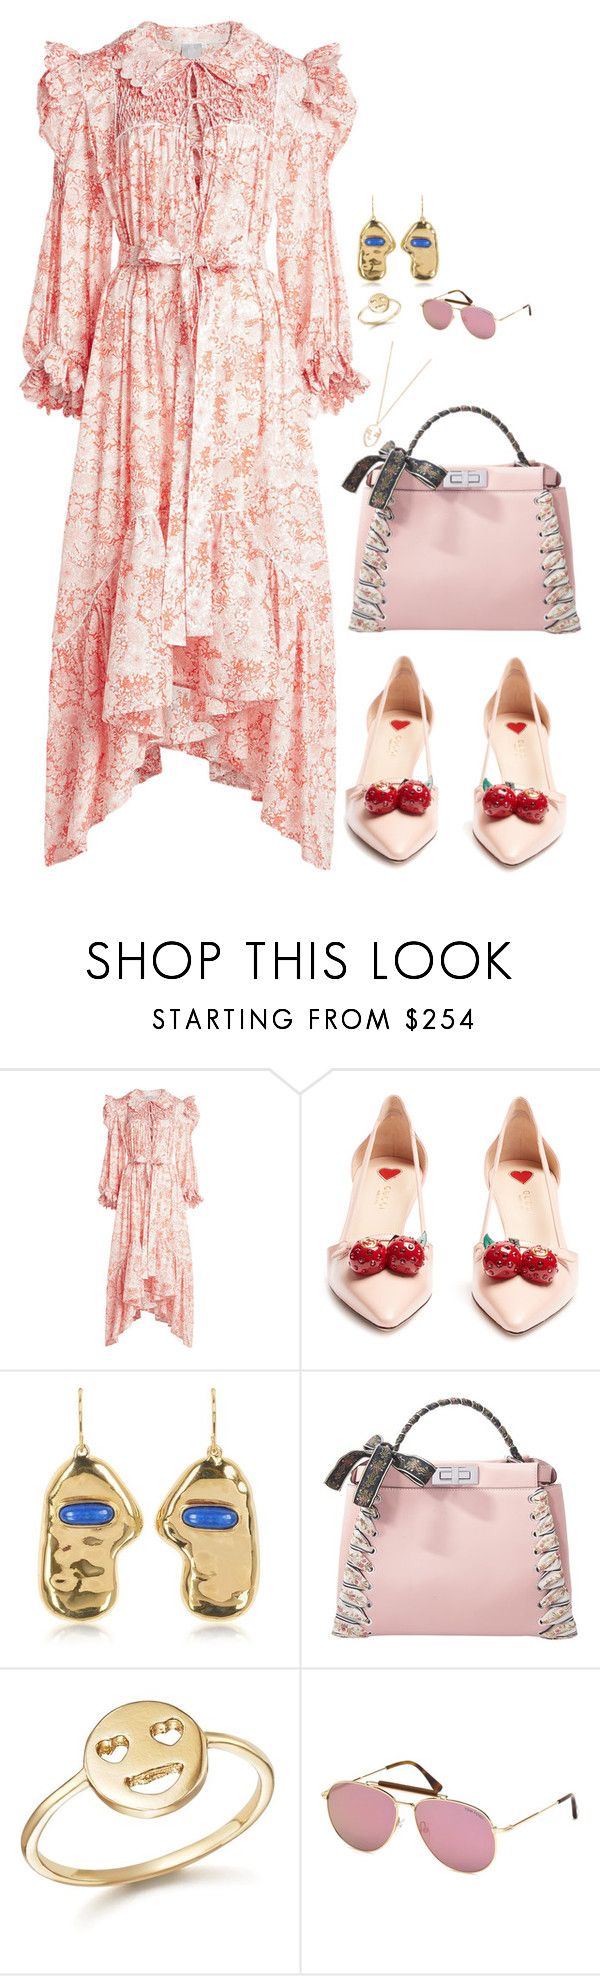 """""""Pink love"""" by beakpettersen ❤ liked on Polyvore featuring Horror Vacui, Gucci, Aurélie Bidermann, Fendi, Bing Bang, Tom Ford, Amber Sceats and Pink"""